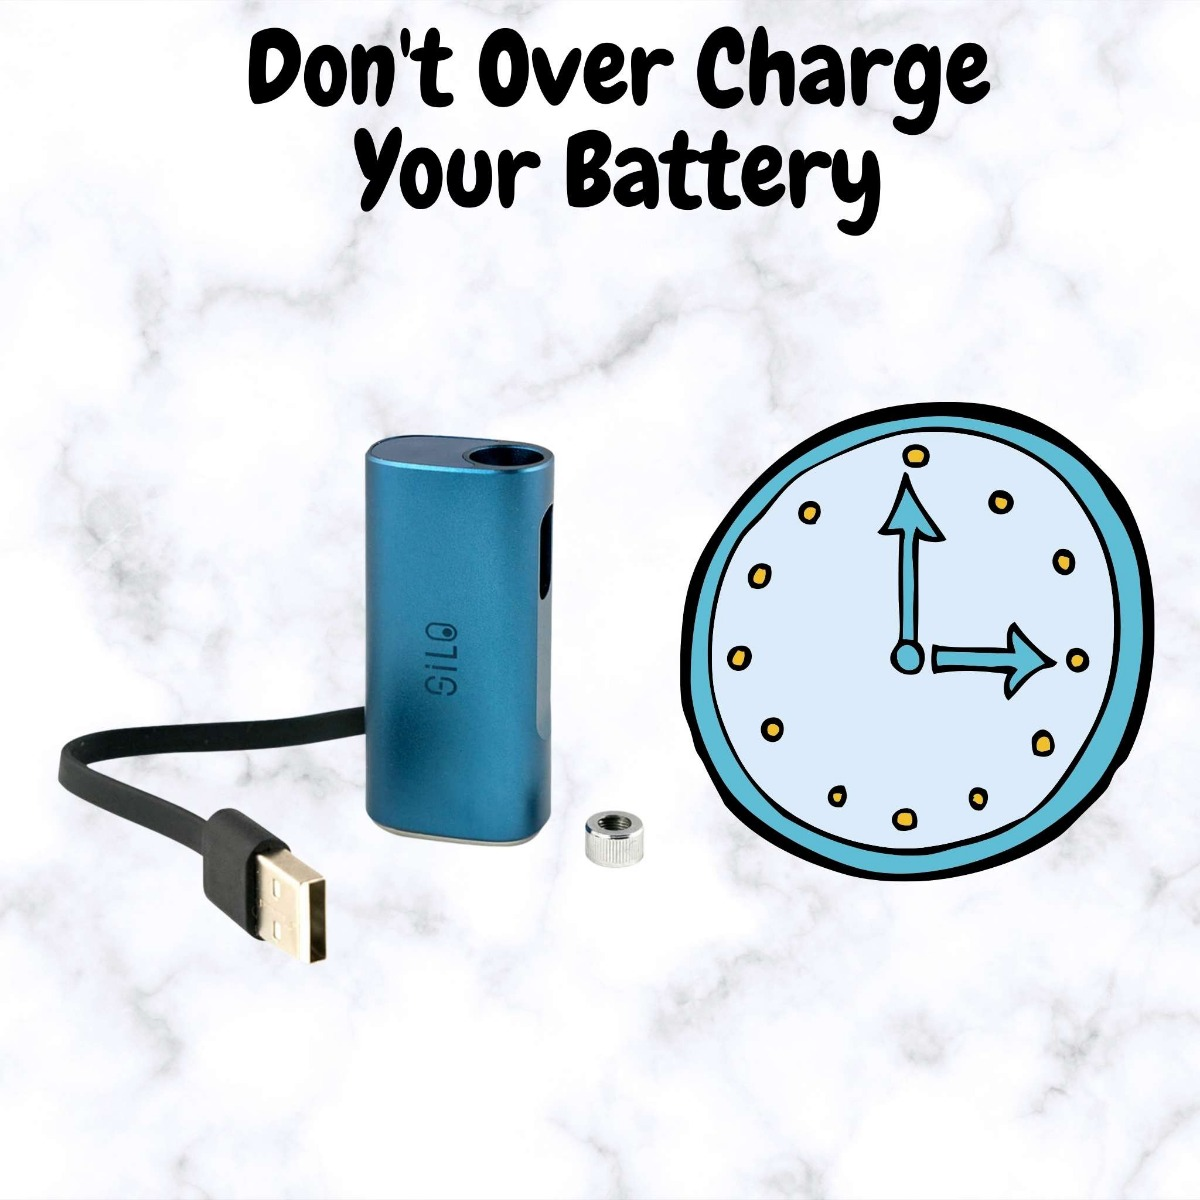 vape battery with charge and clock next to it with text saying Don't Over Charge Your Battery